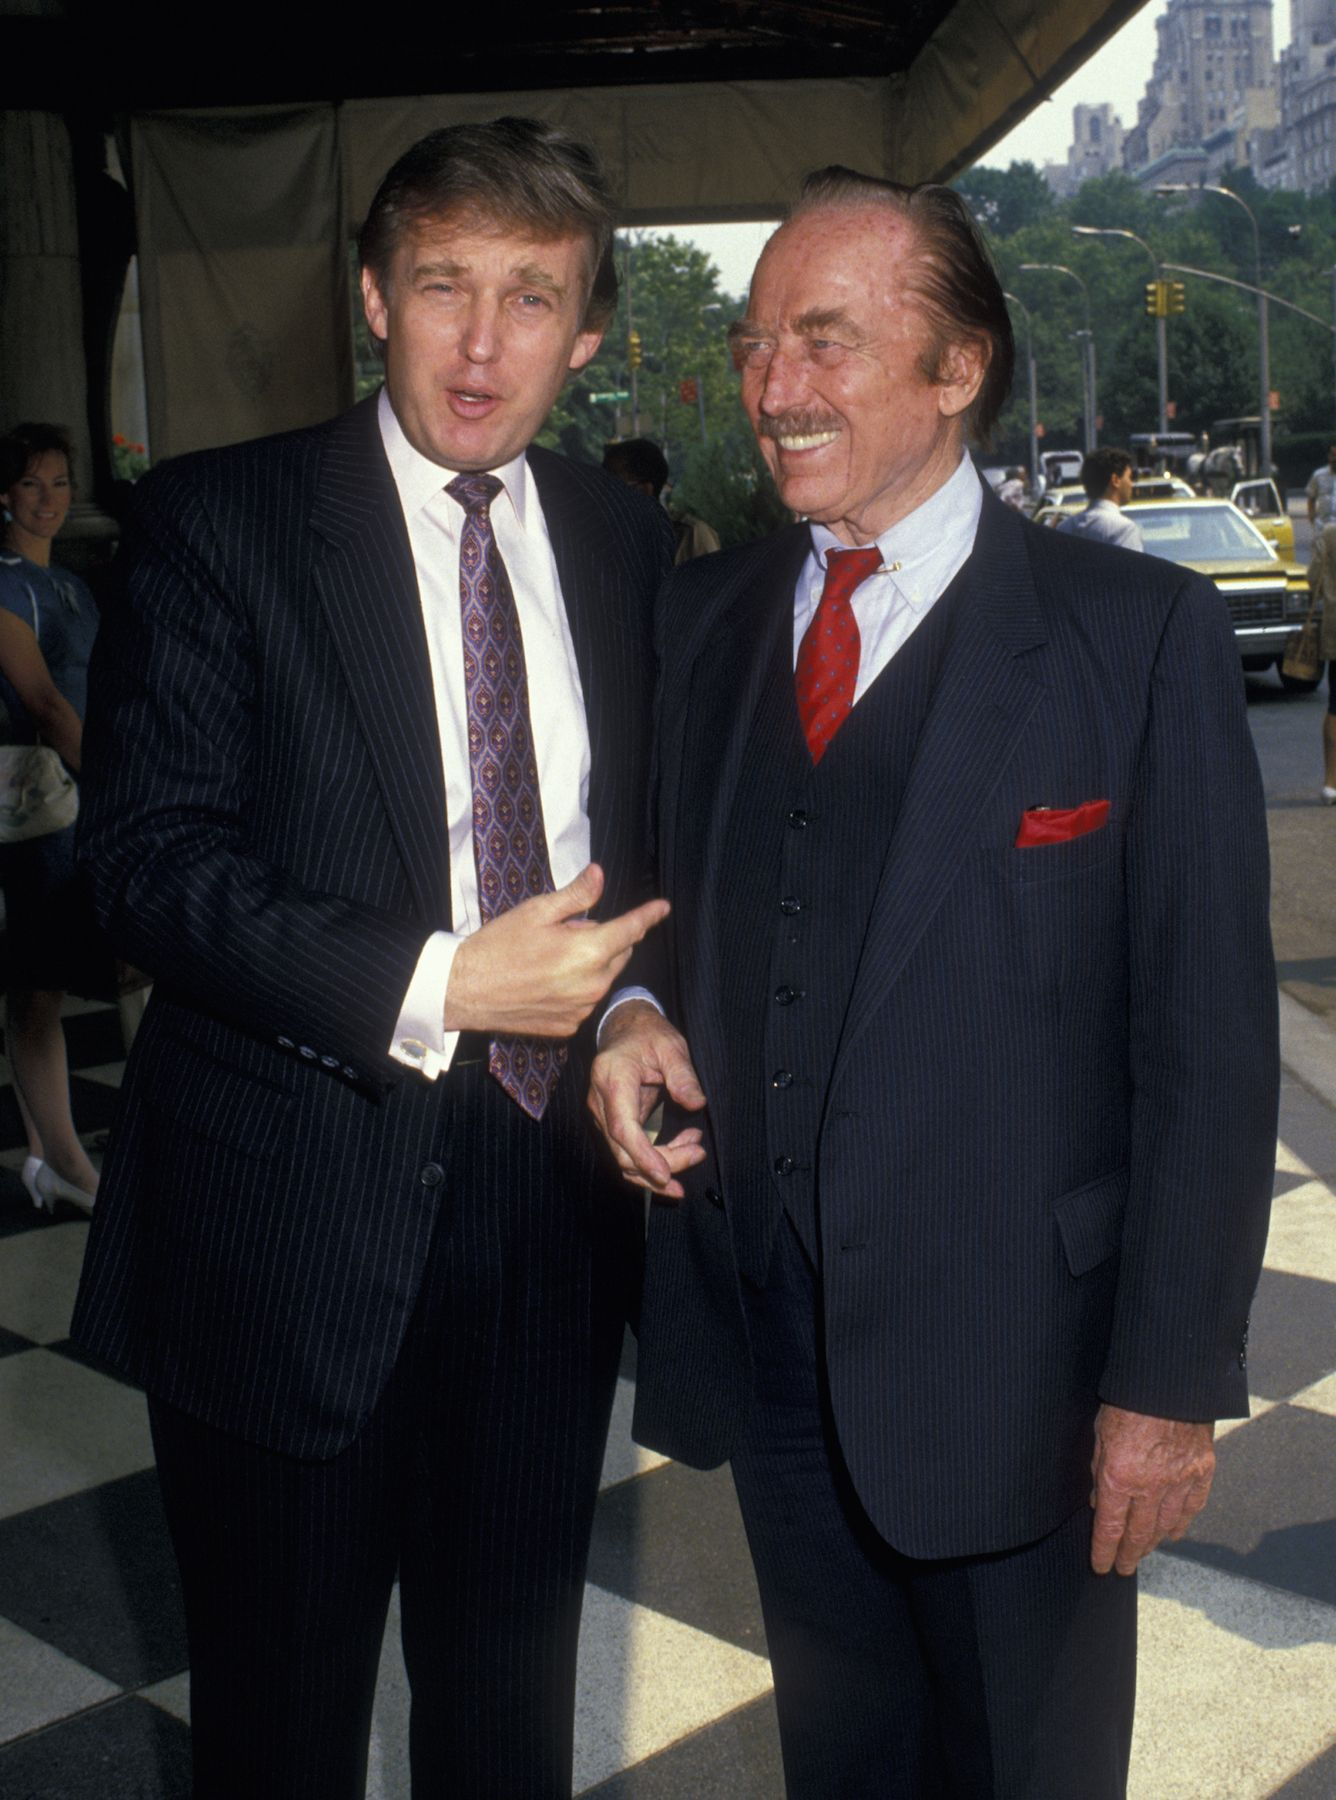 Fred Trump 16 Things You Didn T Know About Donald Trump S Father